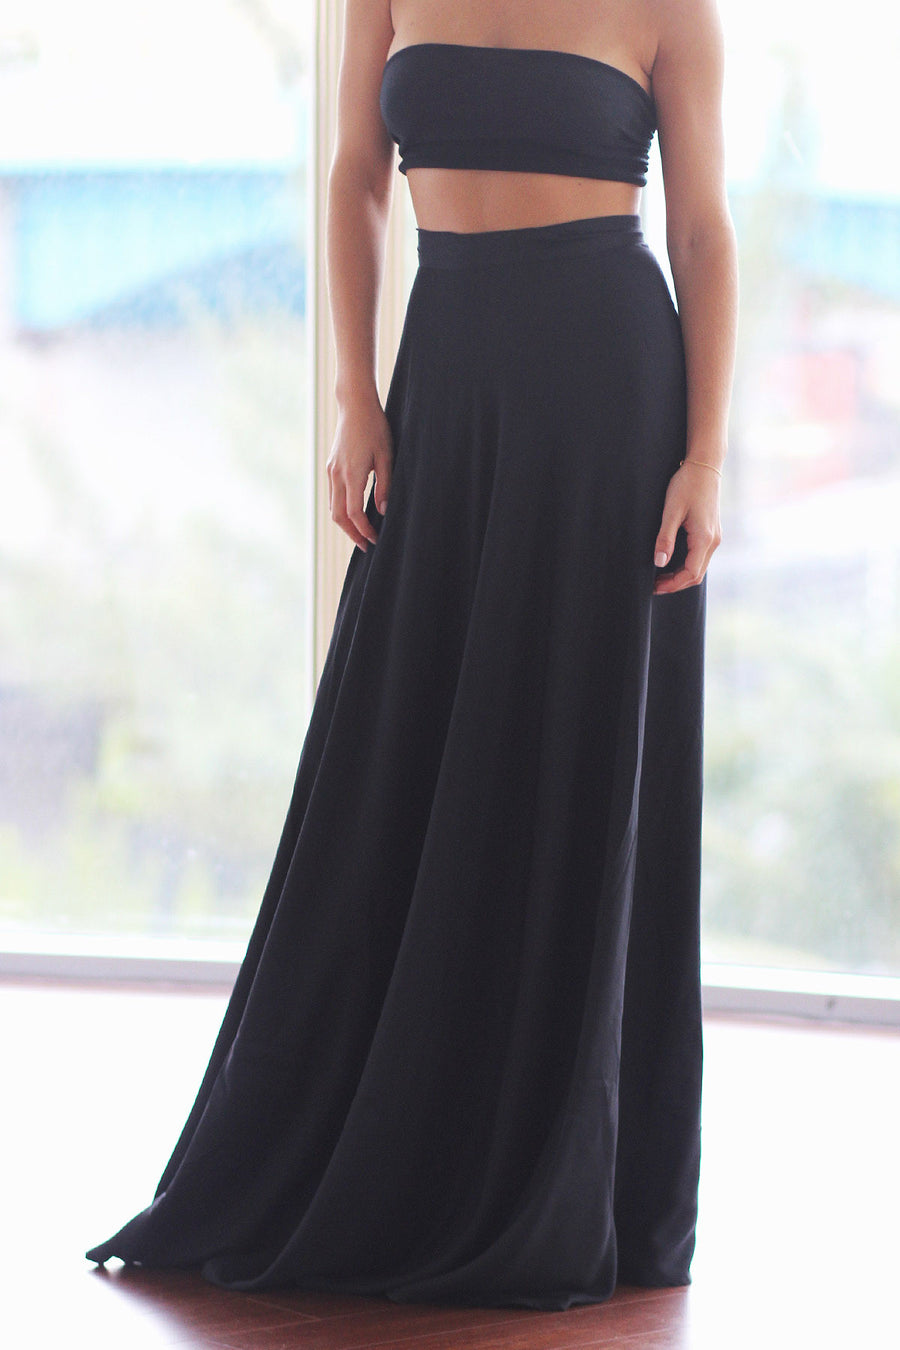 All Night Black Maxi Skirt